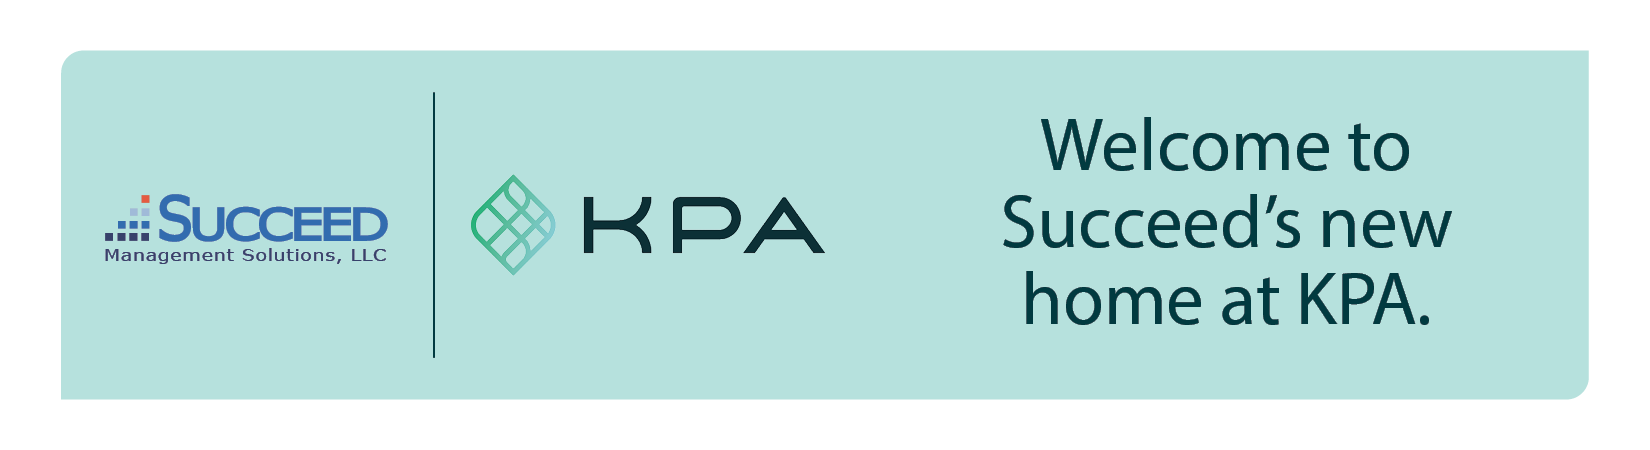 Succeed_to_KPA_Welcome_Banner